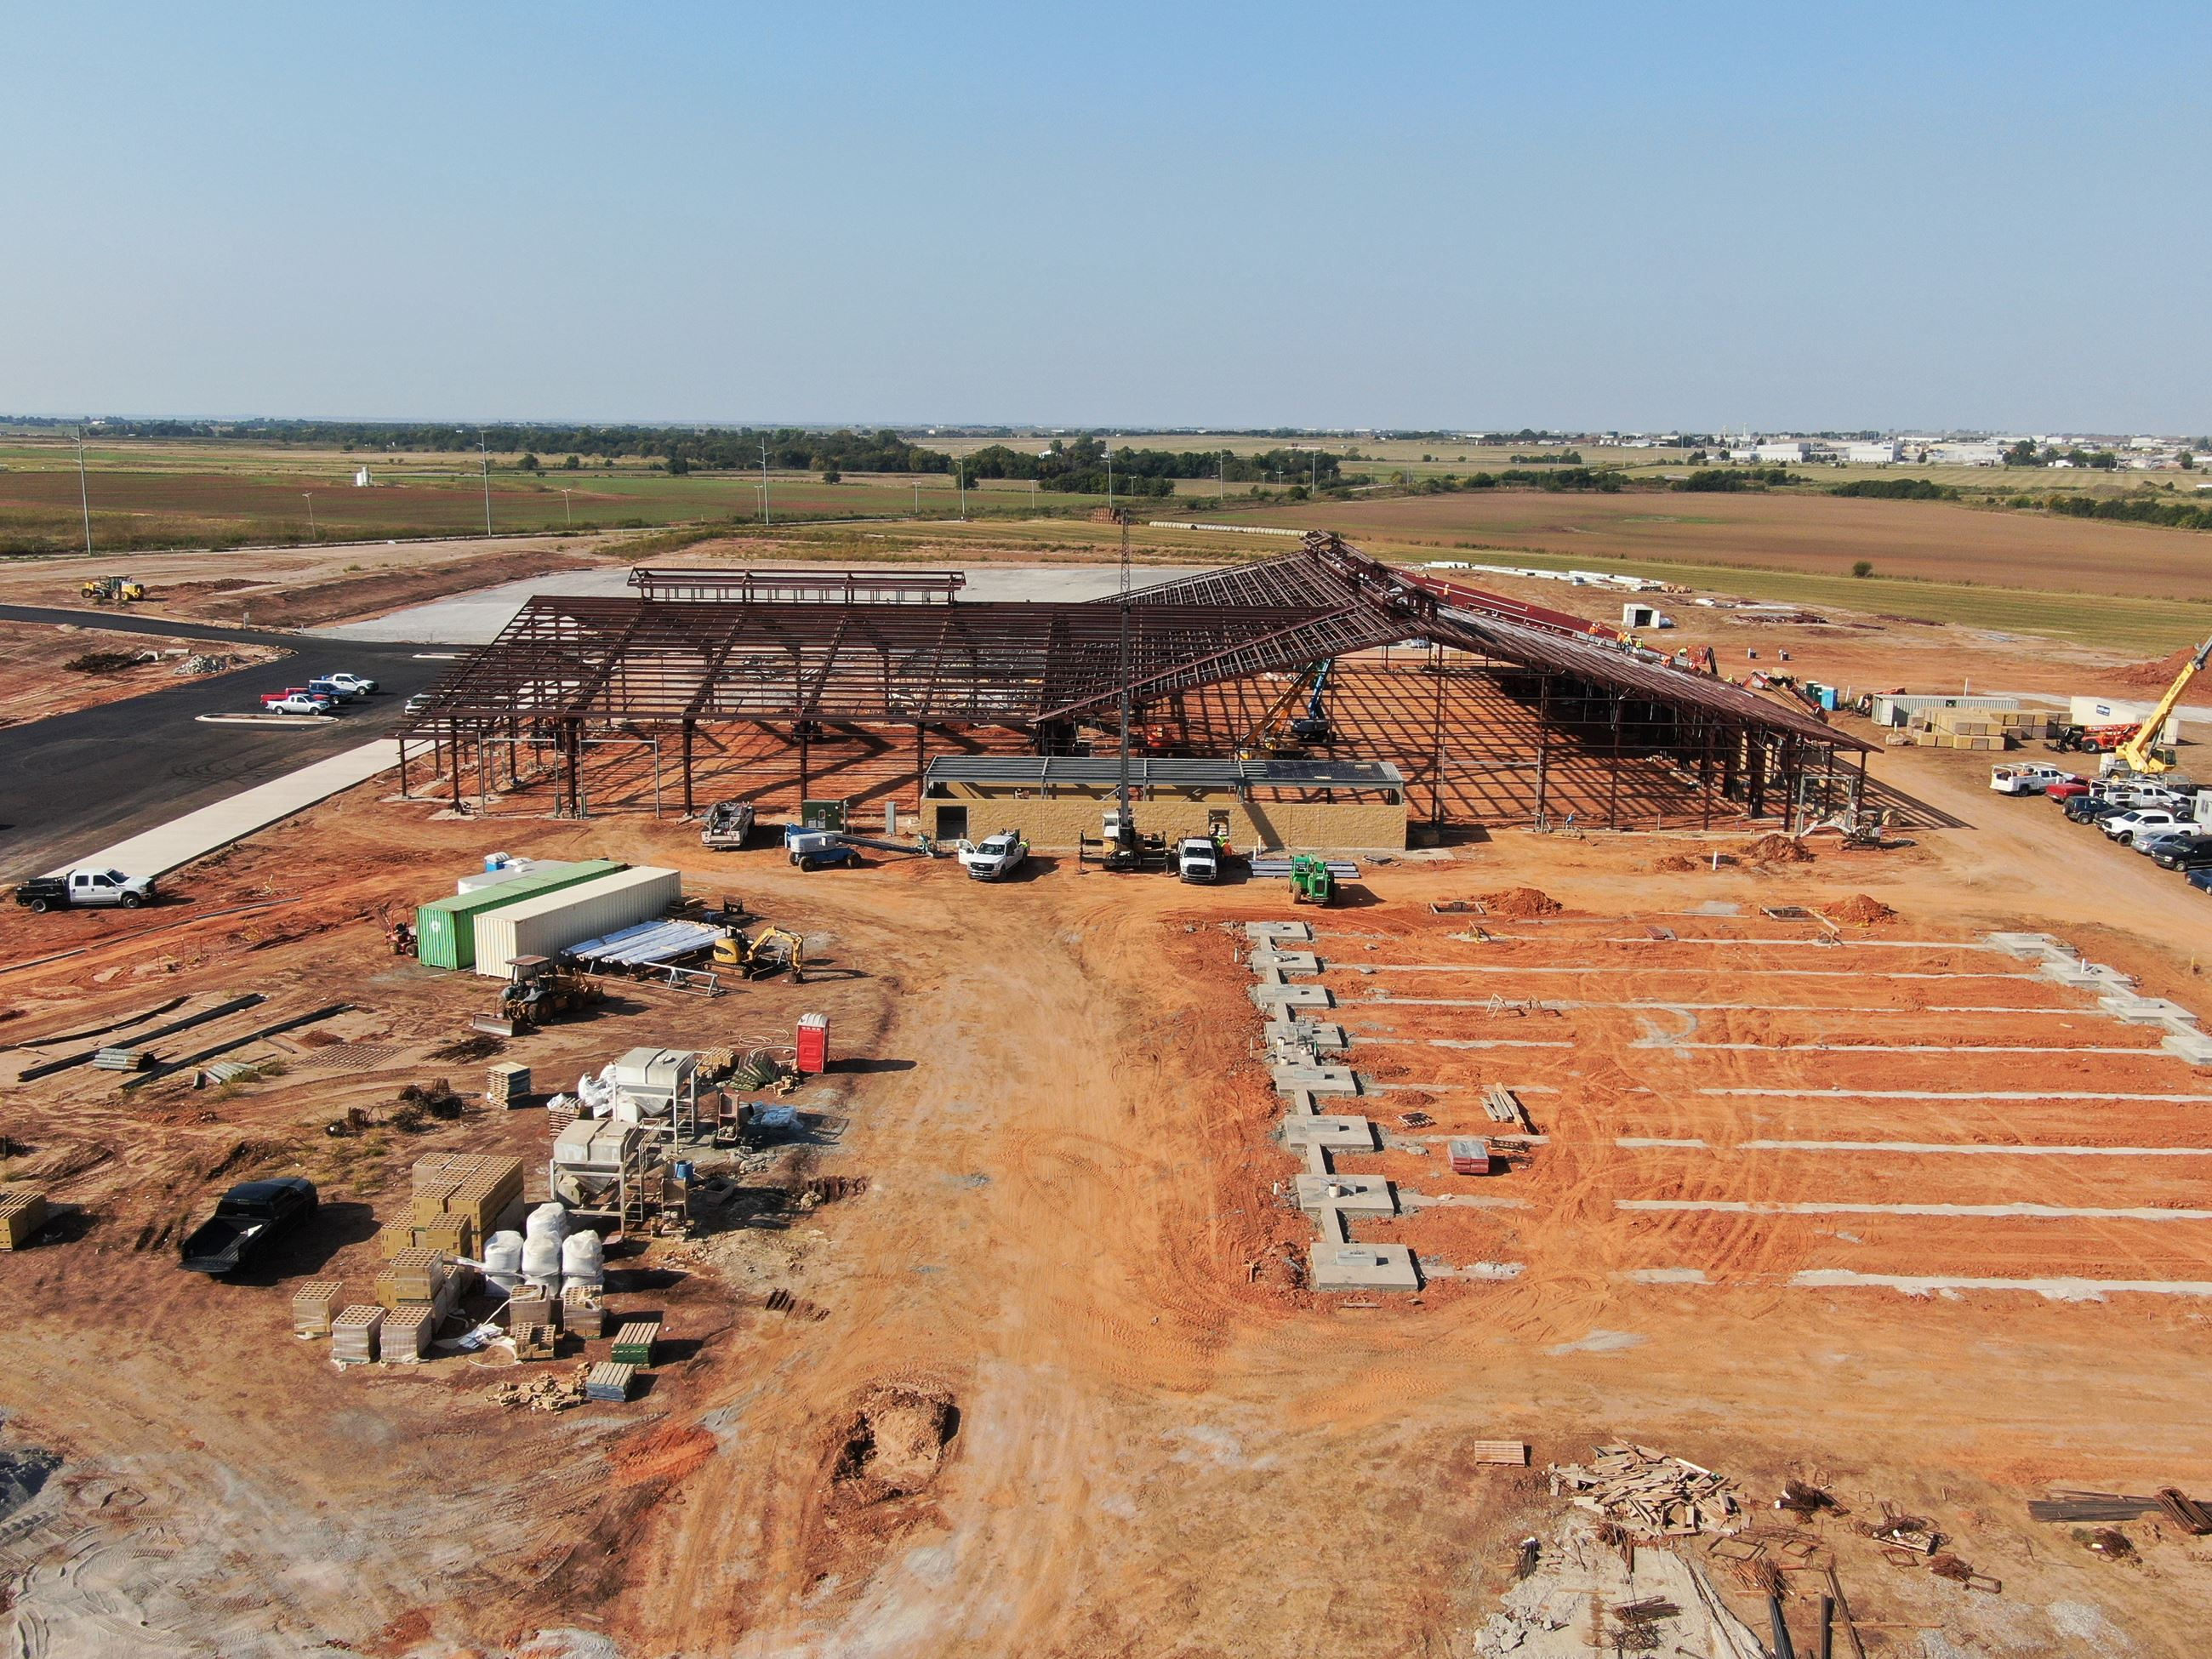 Drone shot looking South West over construction of Barn, Expo Hall, and Arena